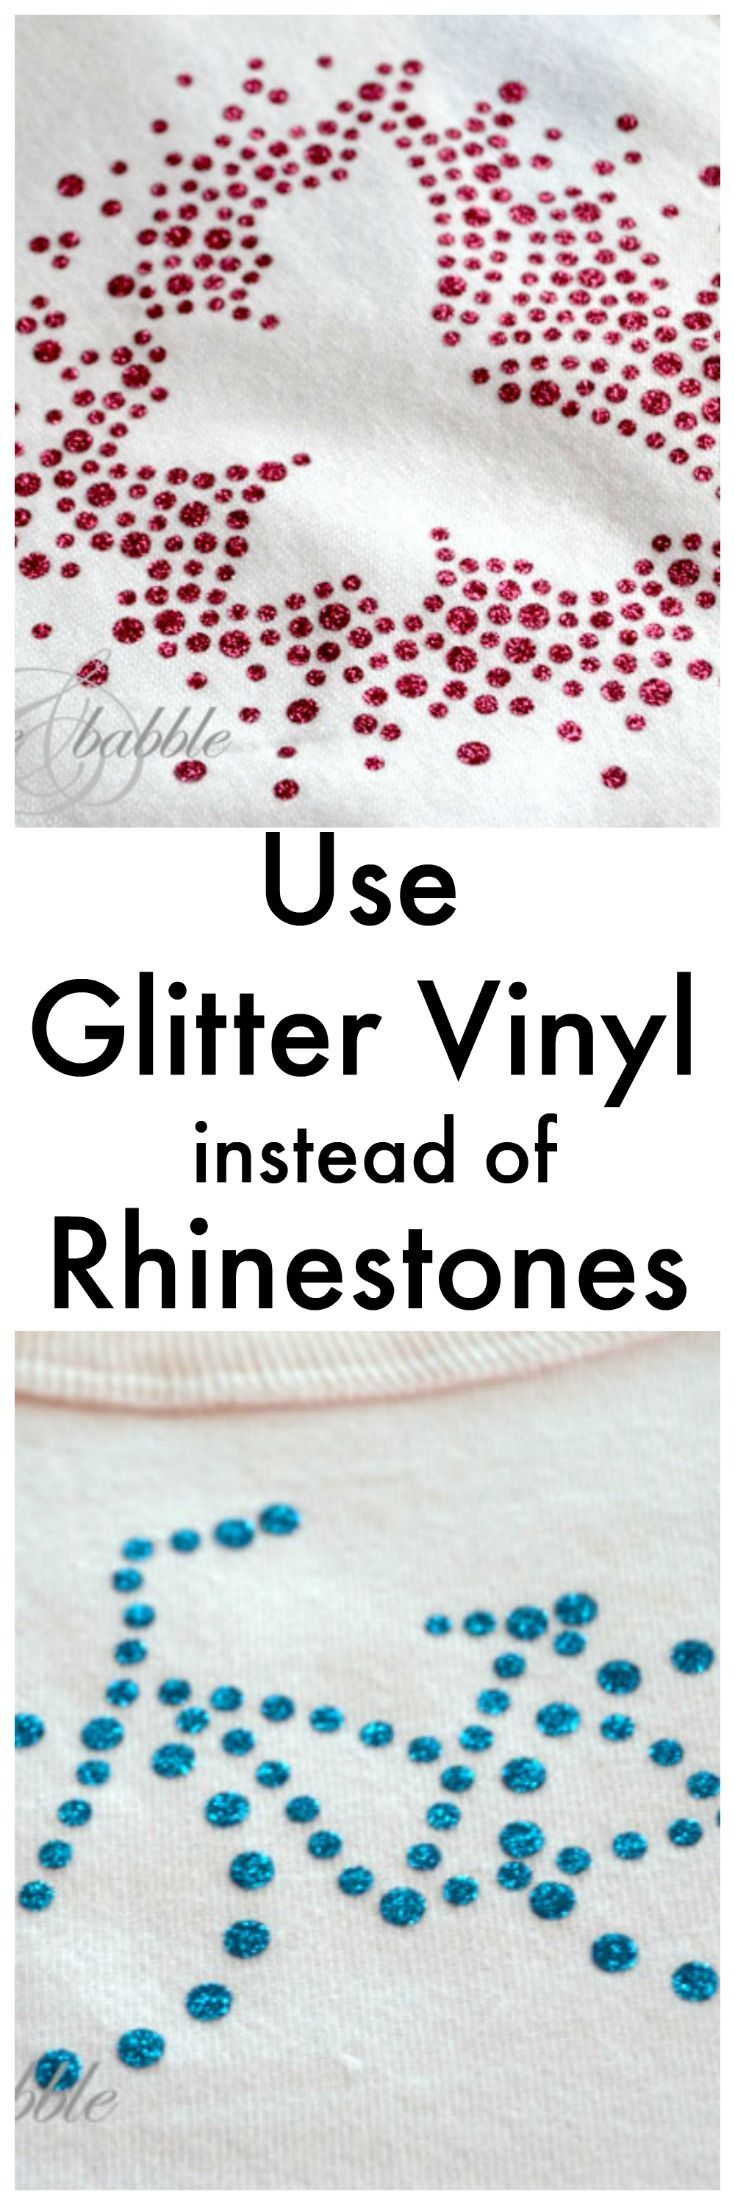 How to use Glitter Vinyl instead of Rhinestones with your Silhouette® machine